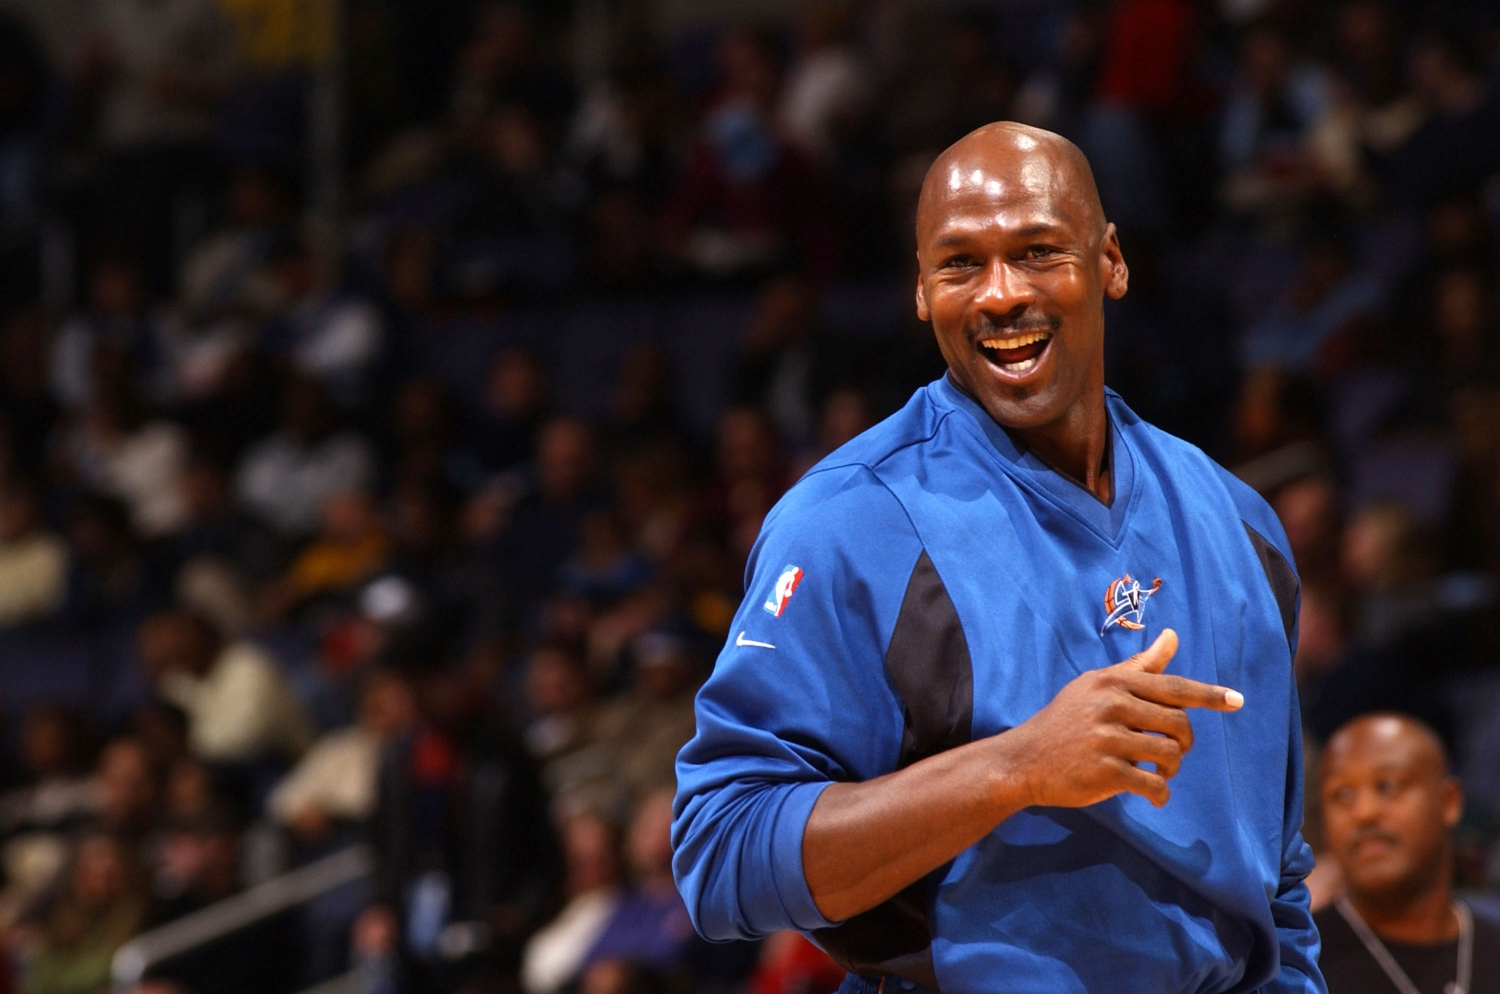 Michael Jordan's Final NBA Game Featured a Surprise Appearance From a Chicago Bulls Icon Thanks to a Classy Move By the 76ers